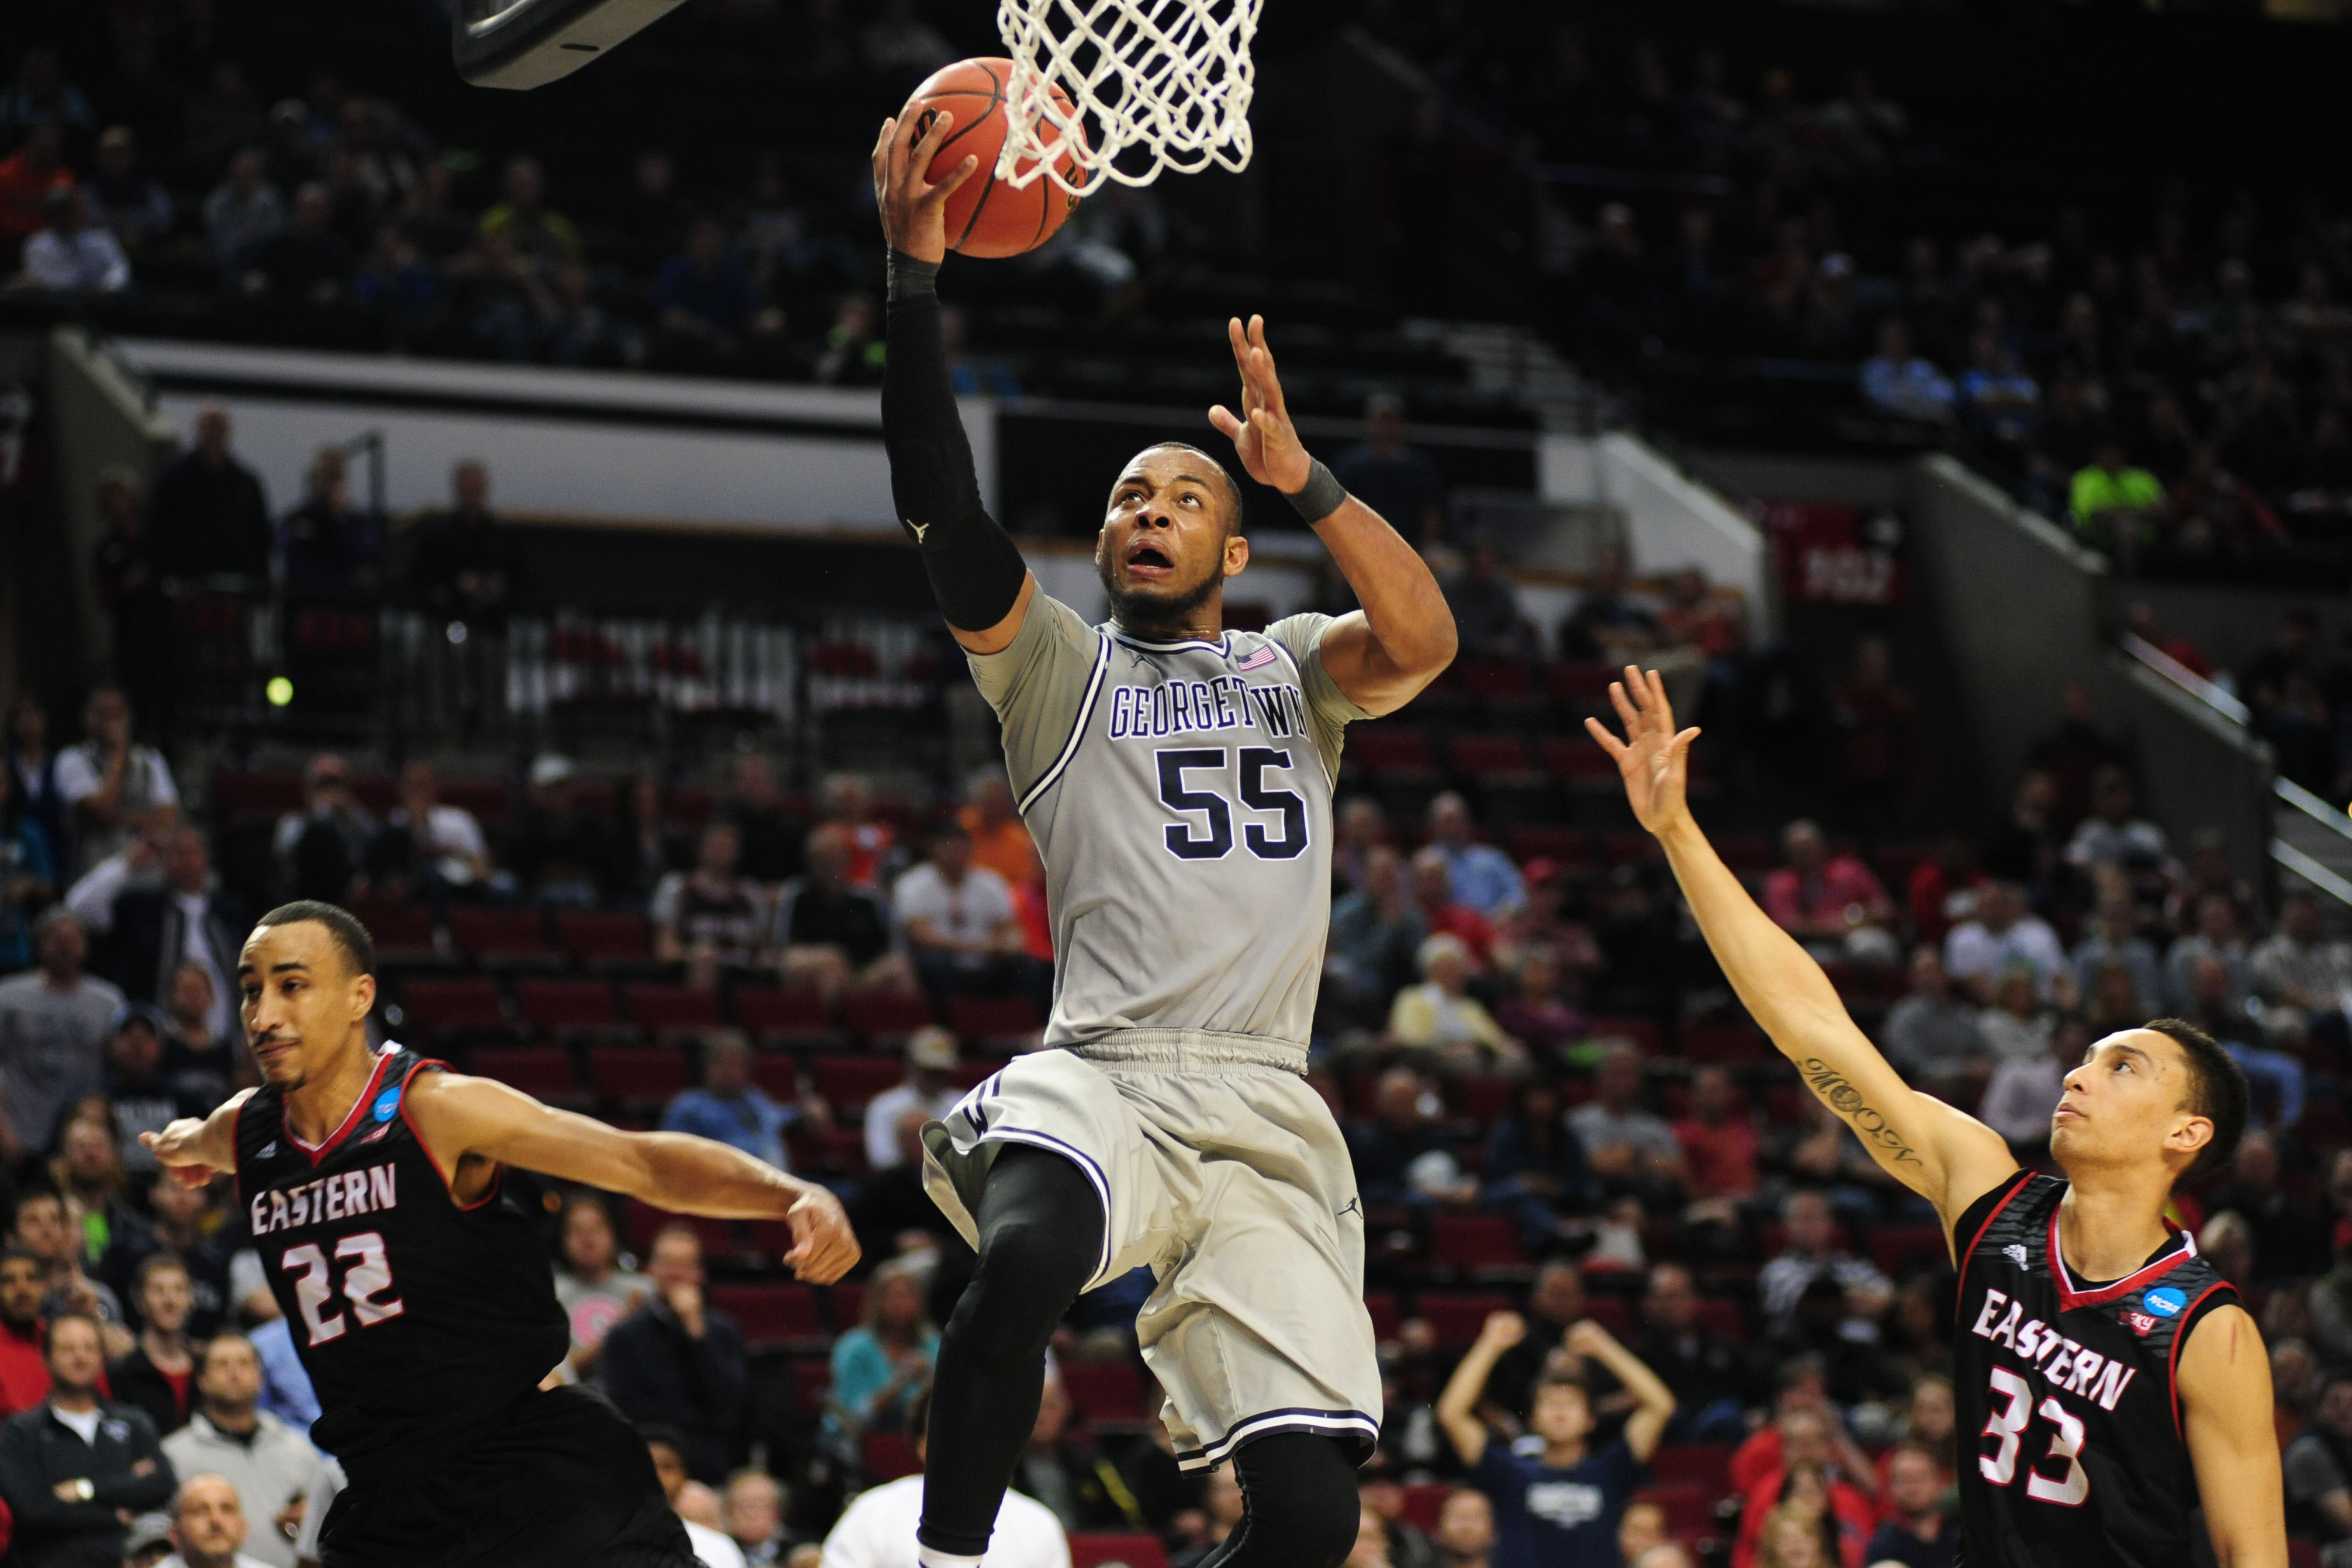 Utah's Round of 32 features a matchup with Patrick Ewing's alma mater, Georgetown.